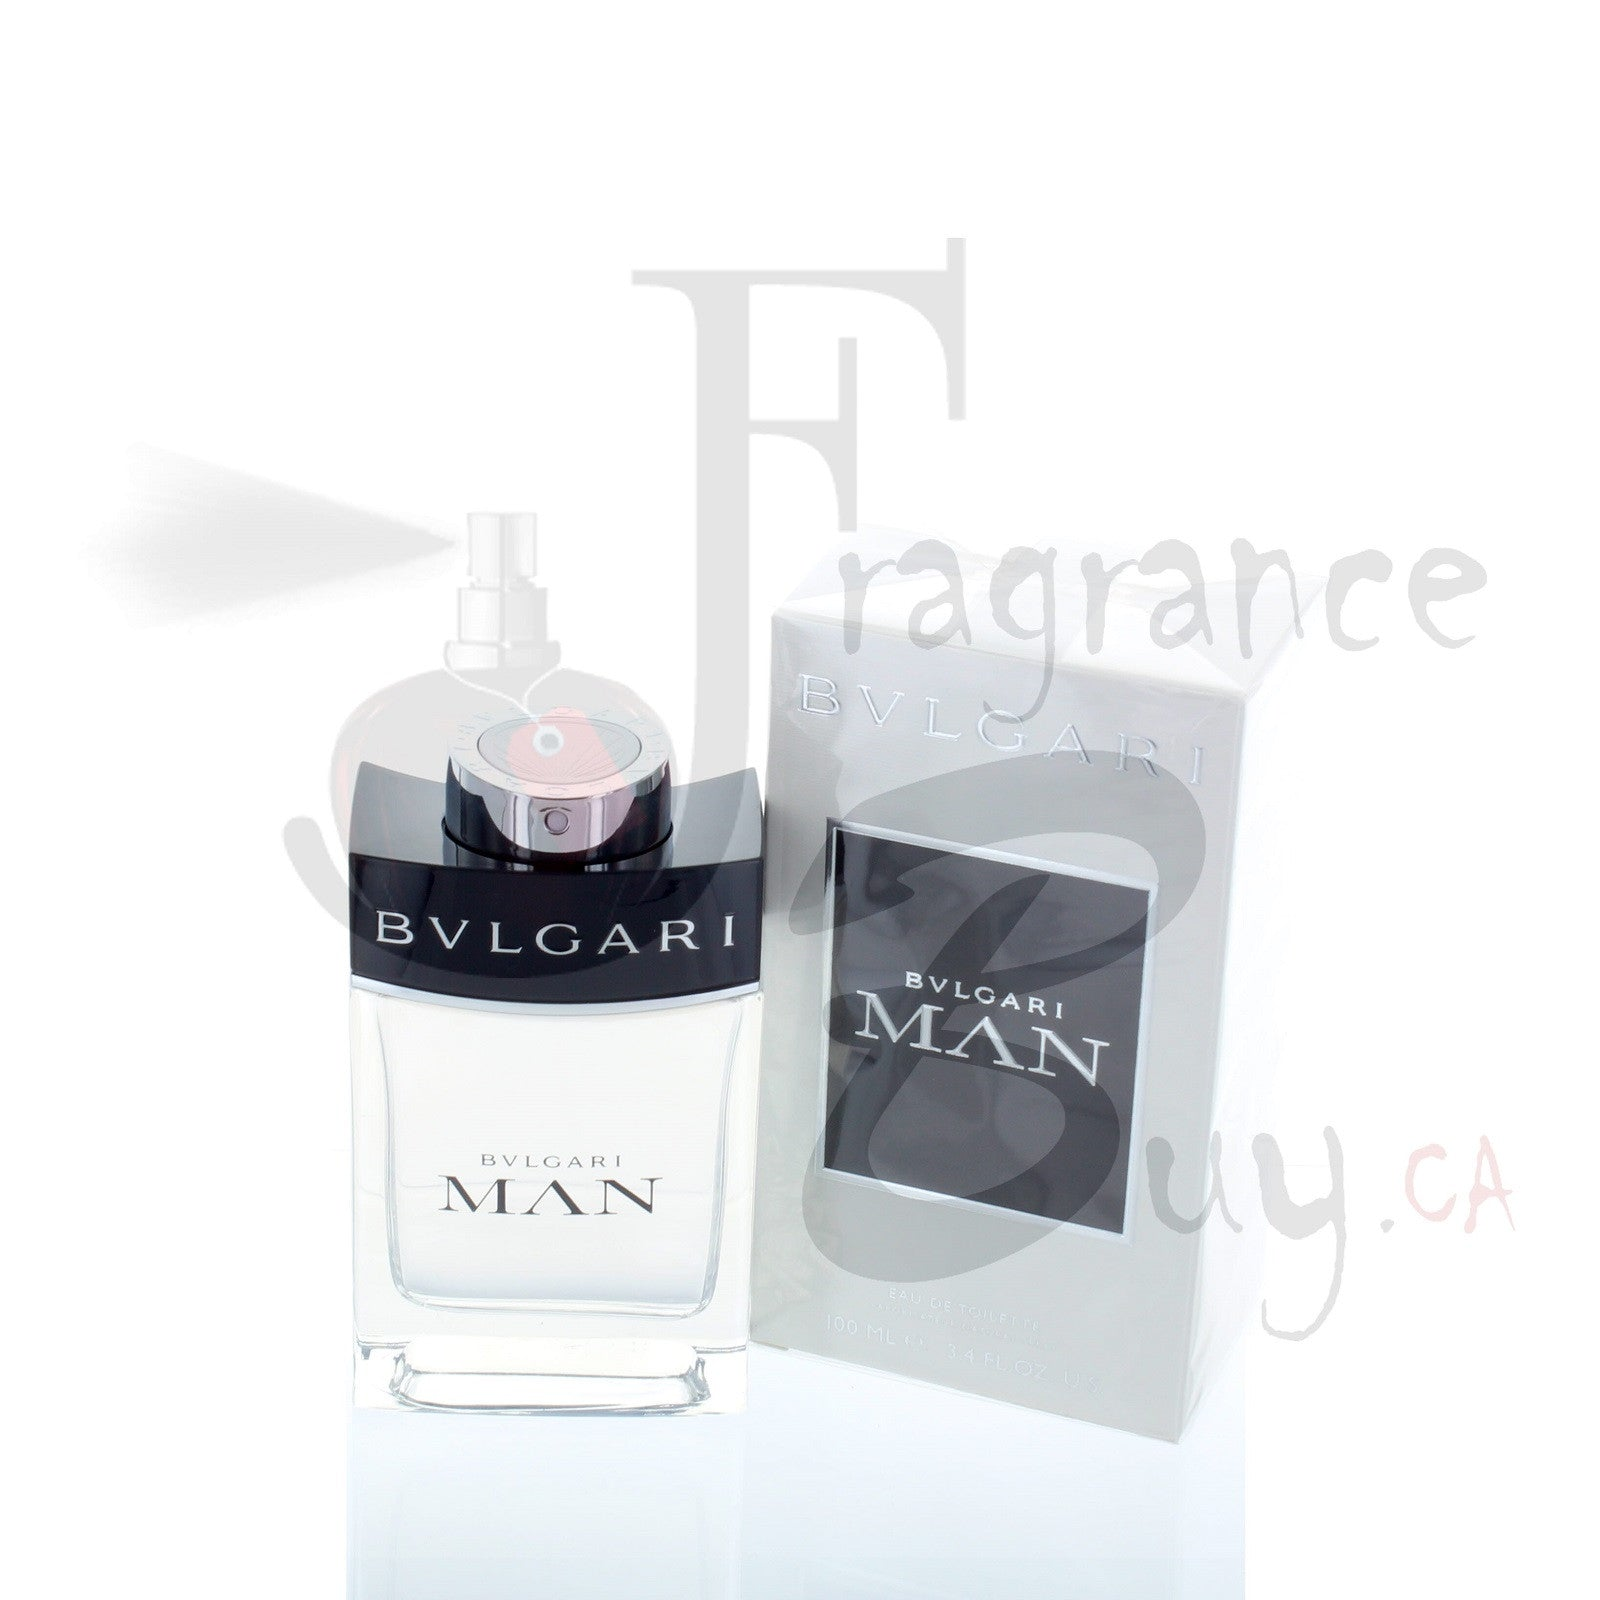 Bvlgari Man (White Box) For Man